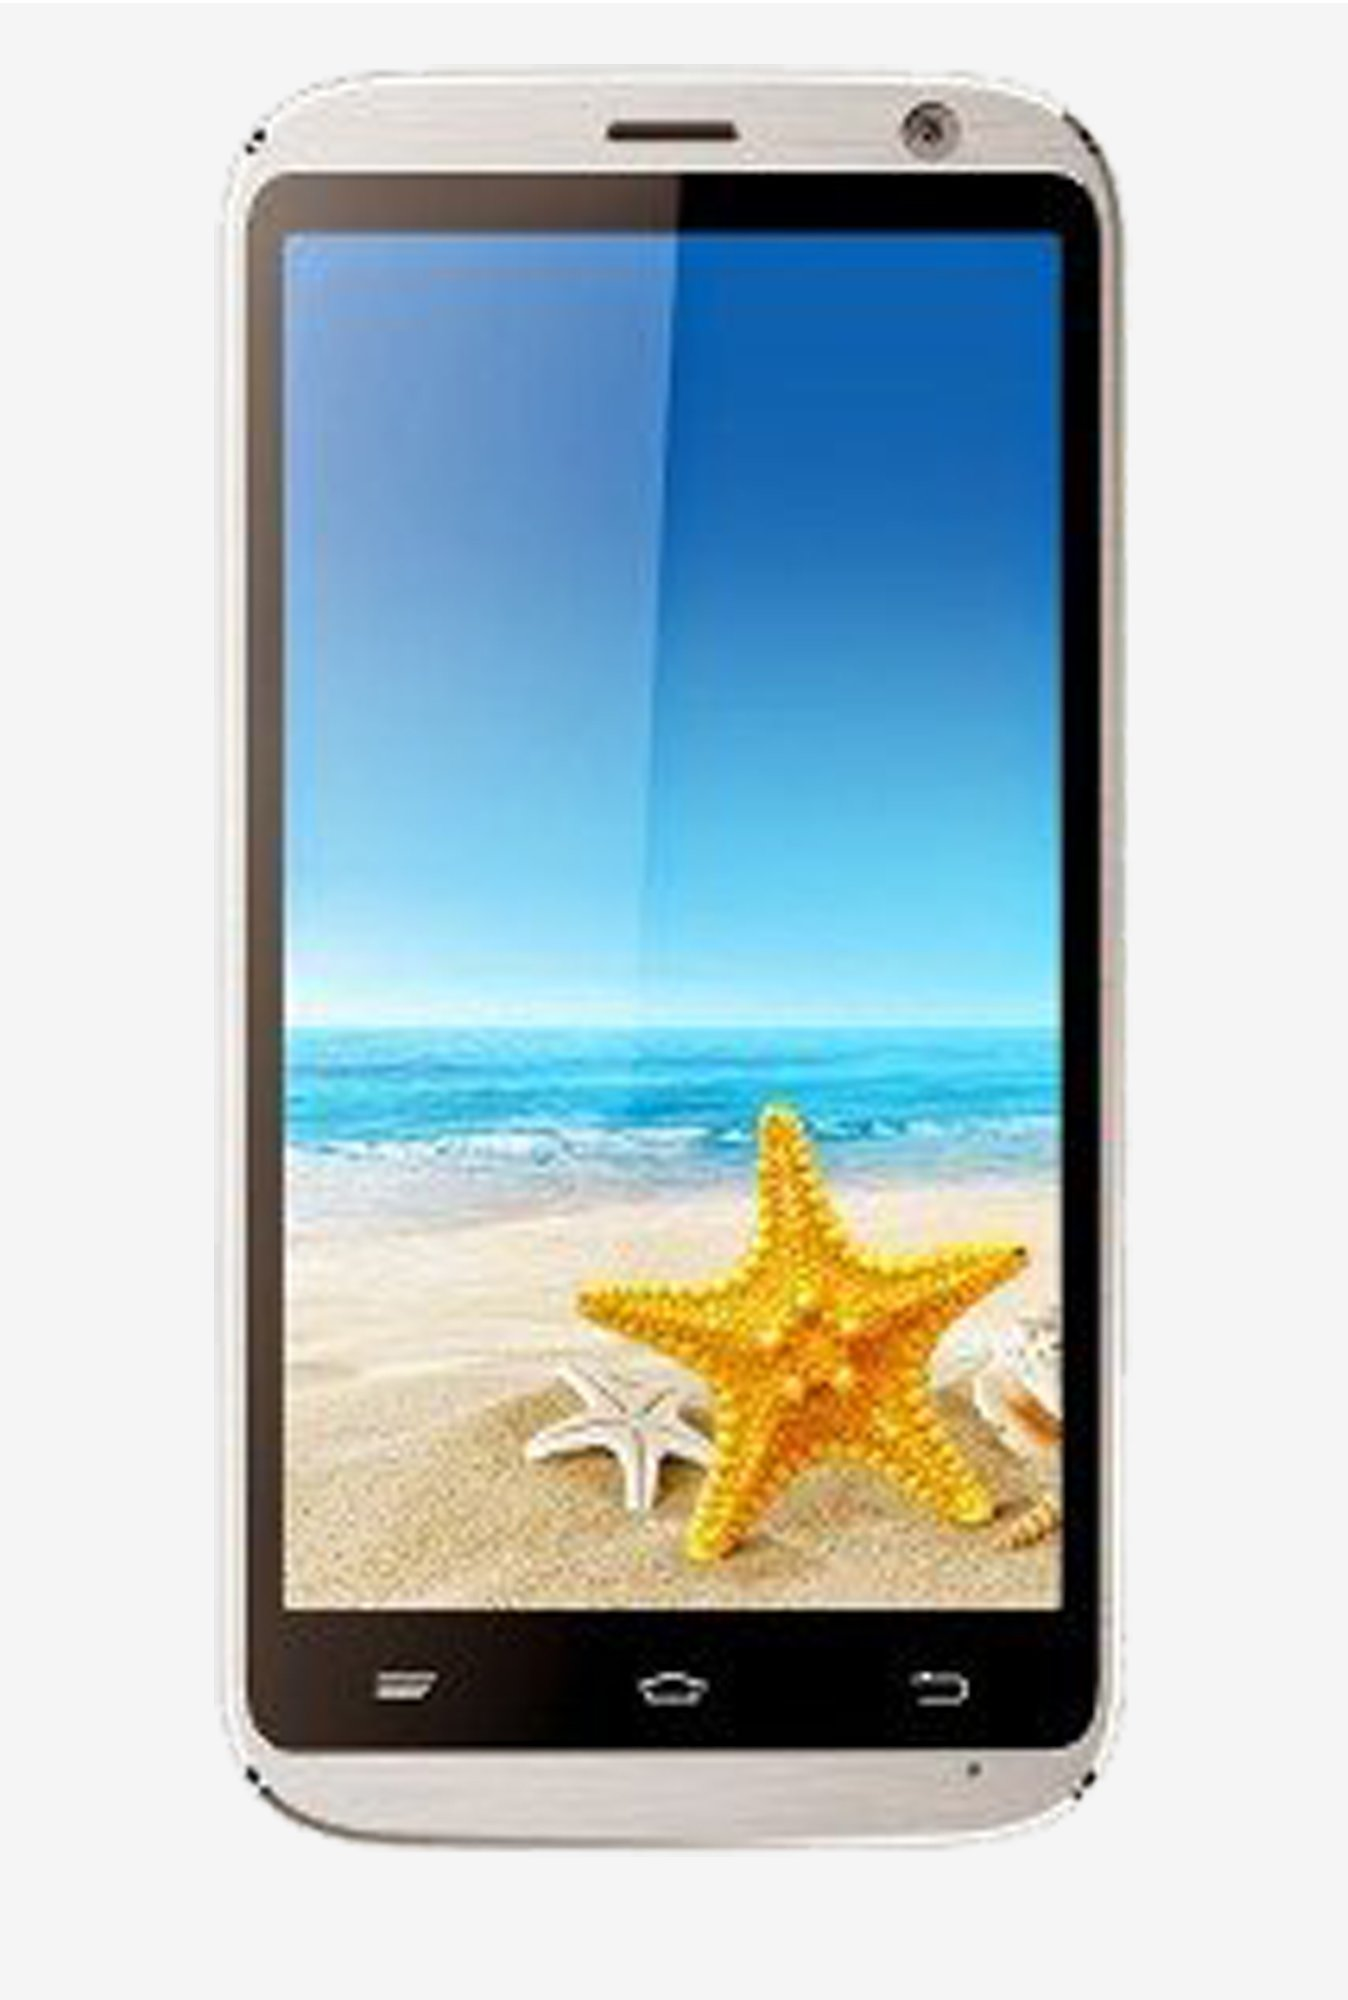 Philips S309 Smartphone (Black)